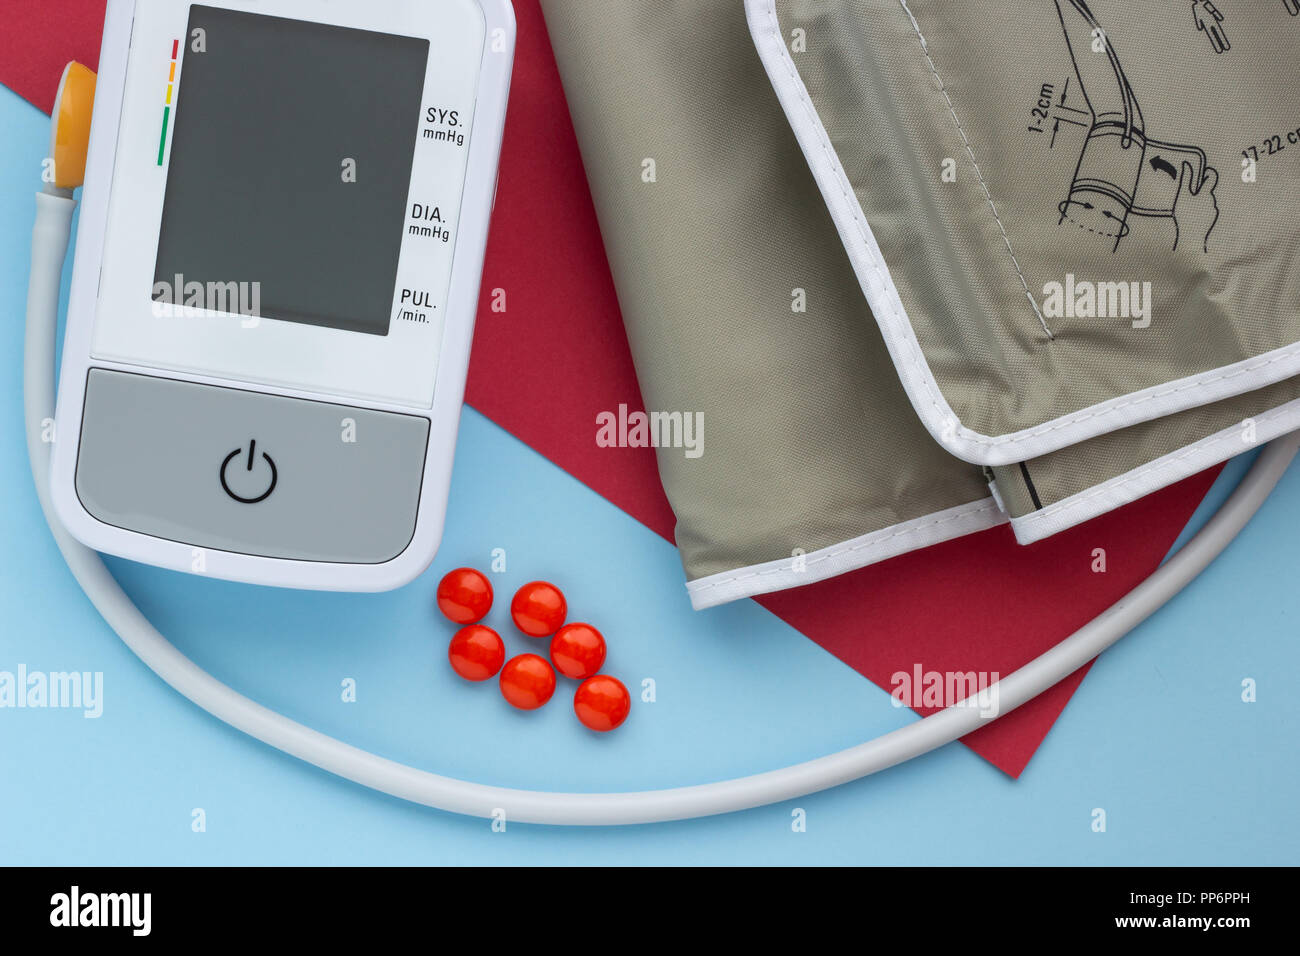 Close-up, a device for measuring blood pressure with tablets on a blue and red background - Stock Image